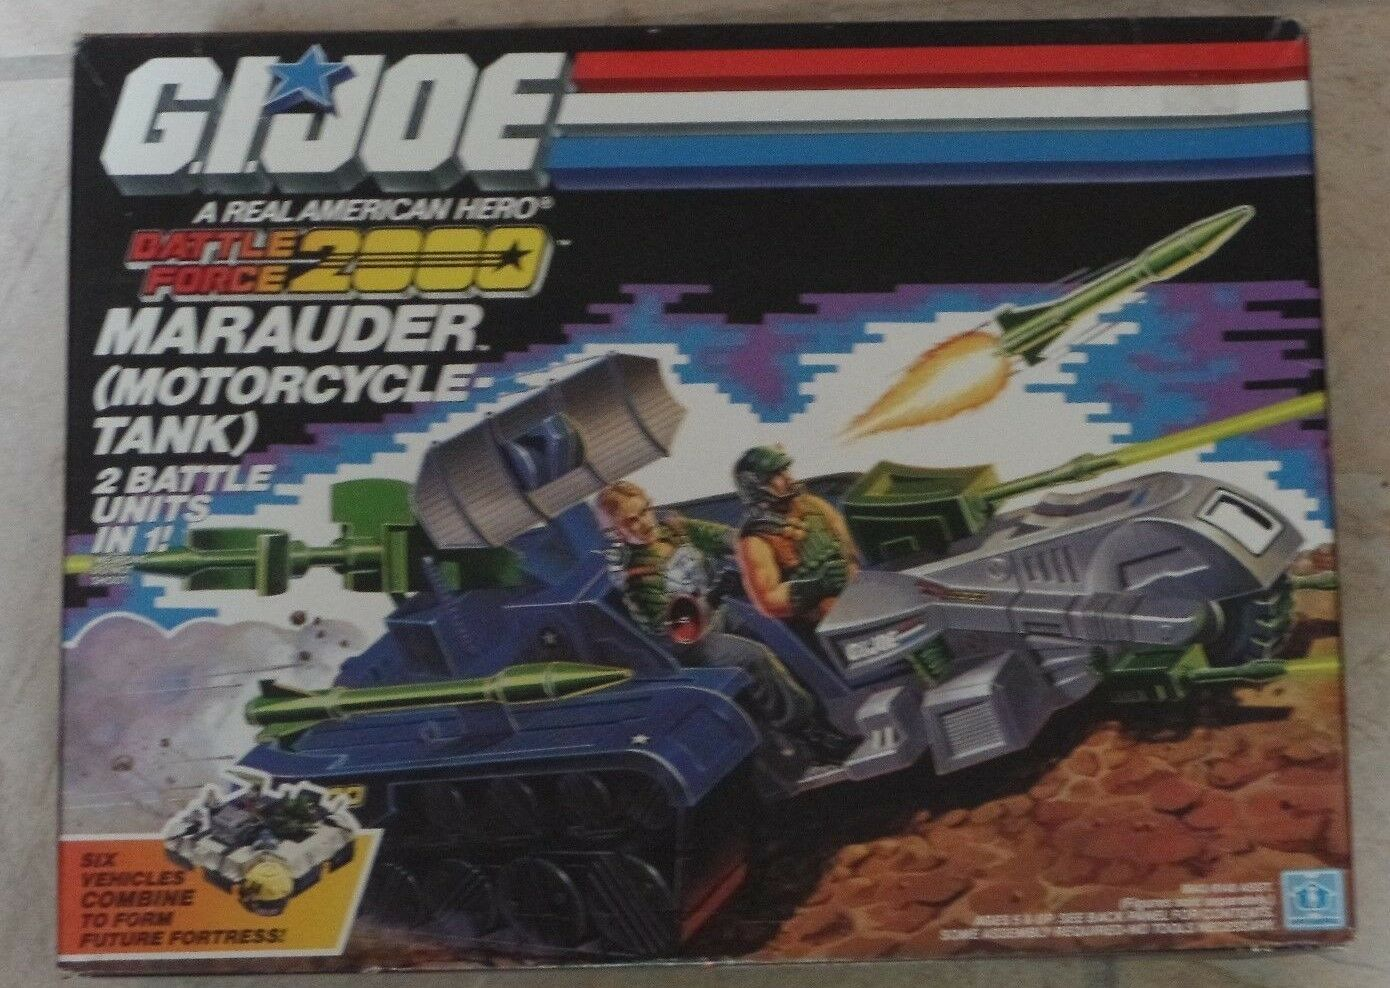 GI Joe Battle Force 2000 MARAUDER Motorcycle Tank Hasbro 1987 New SEALED MISB